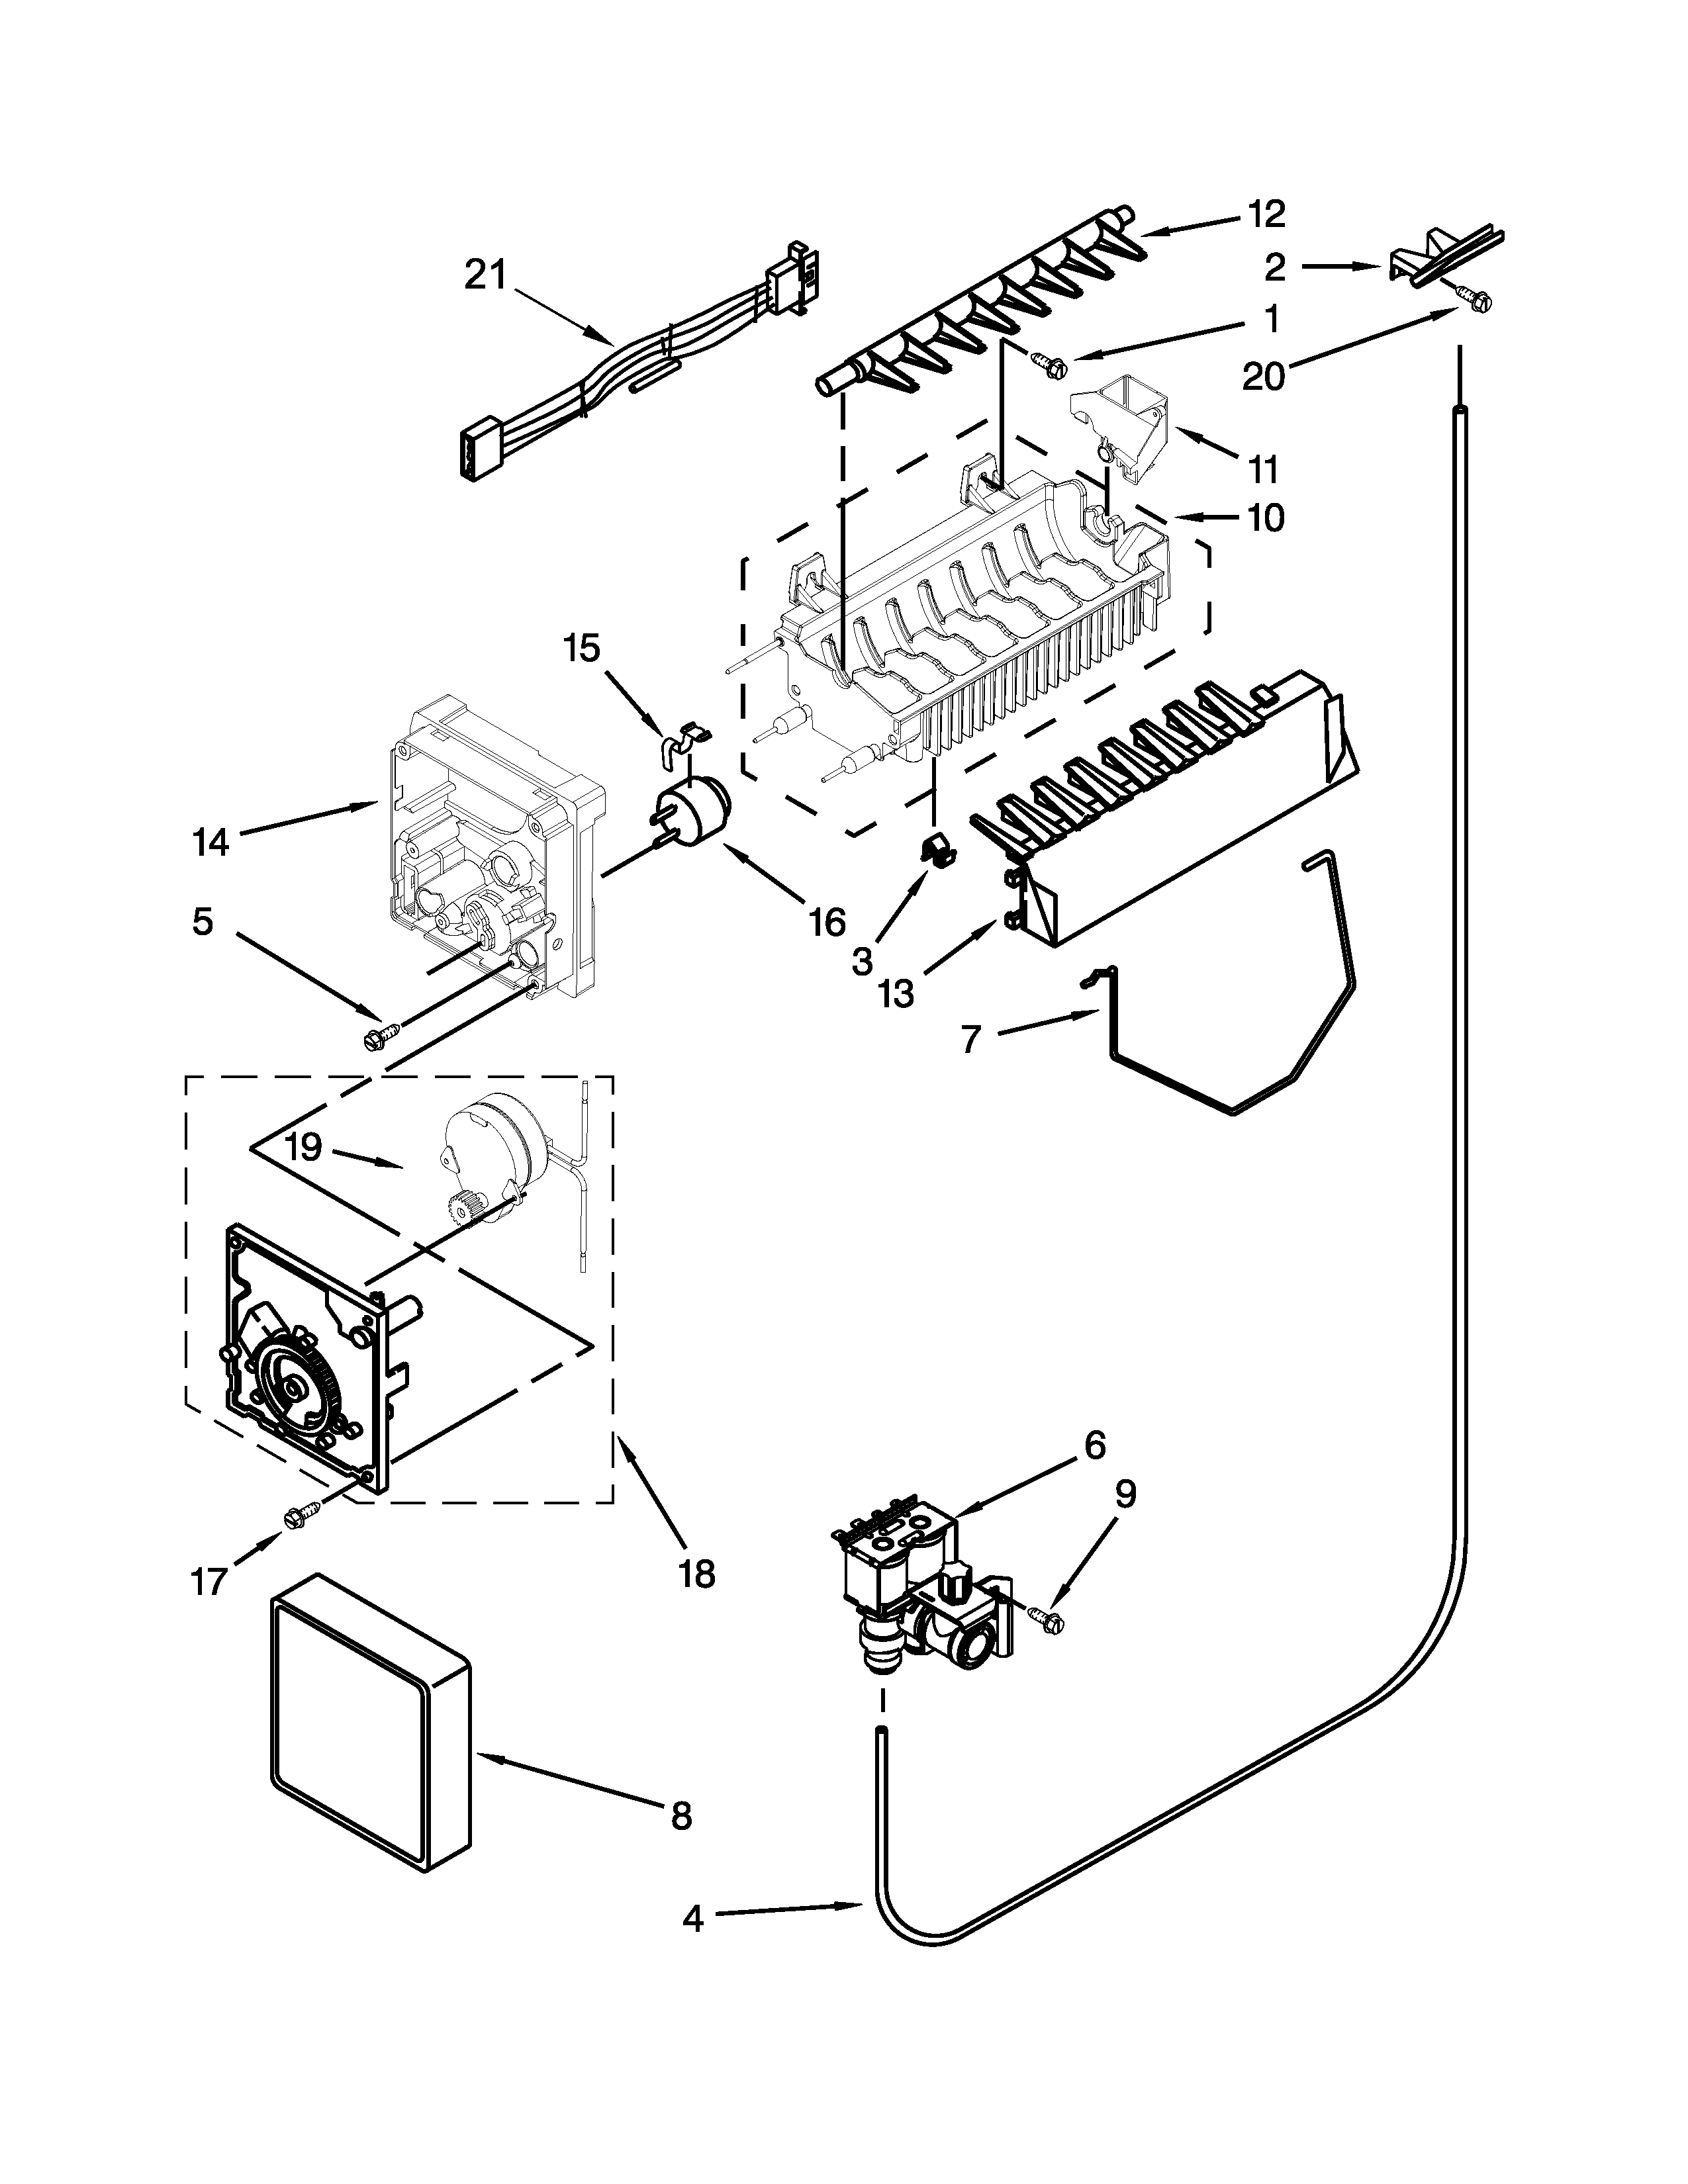 ICE MAKER PARTS Diagram & Parts List for Model 10651122211